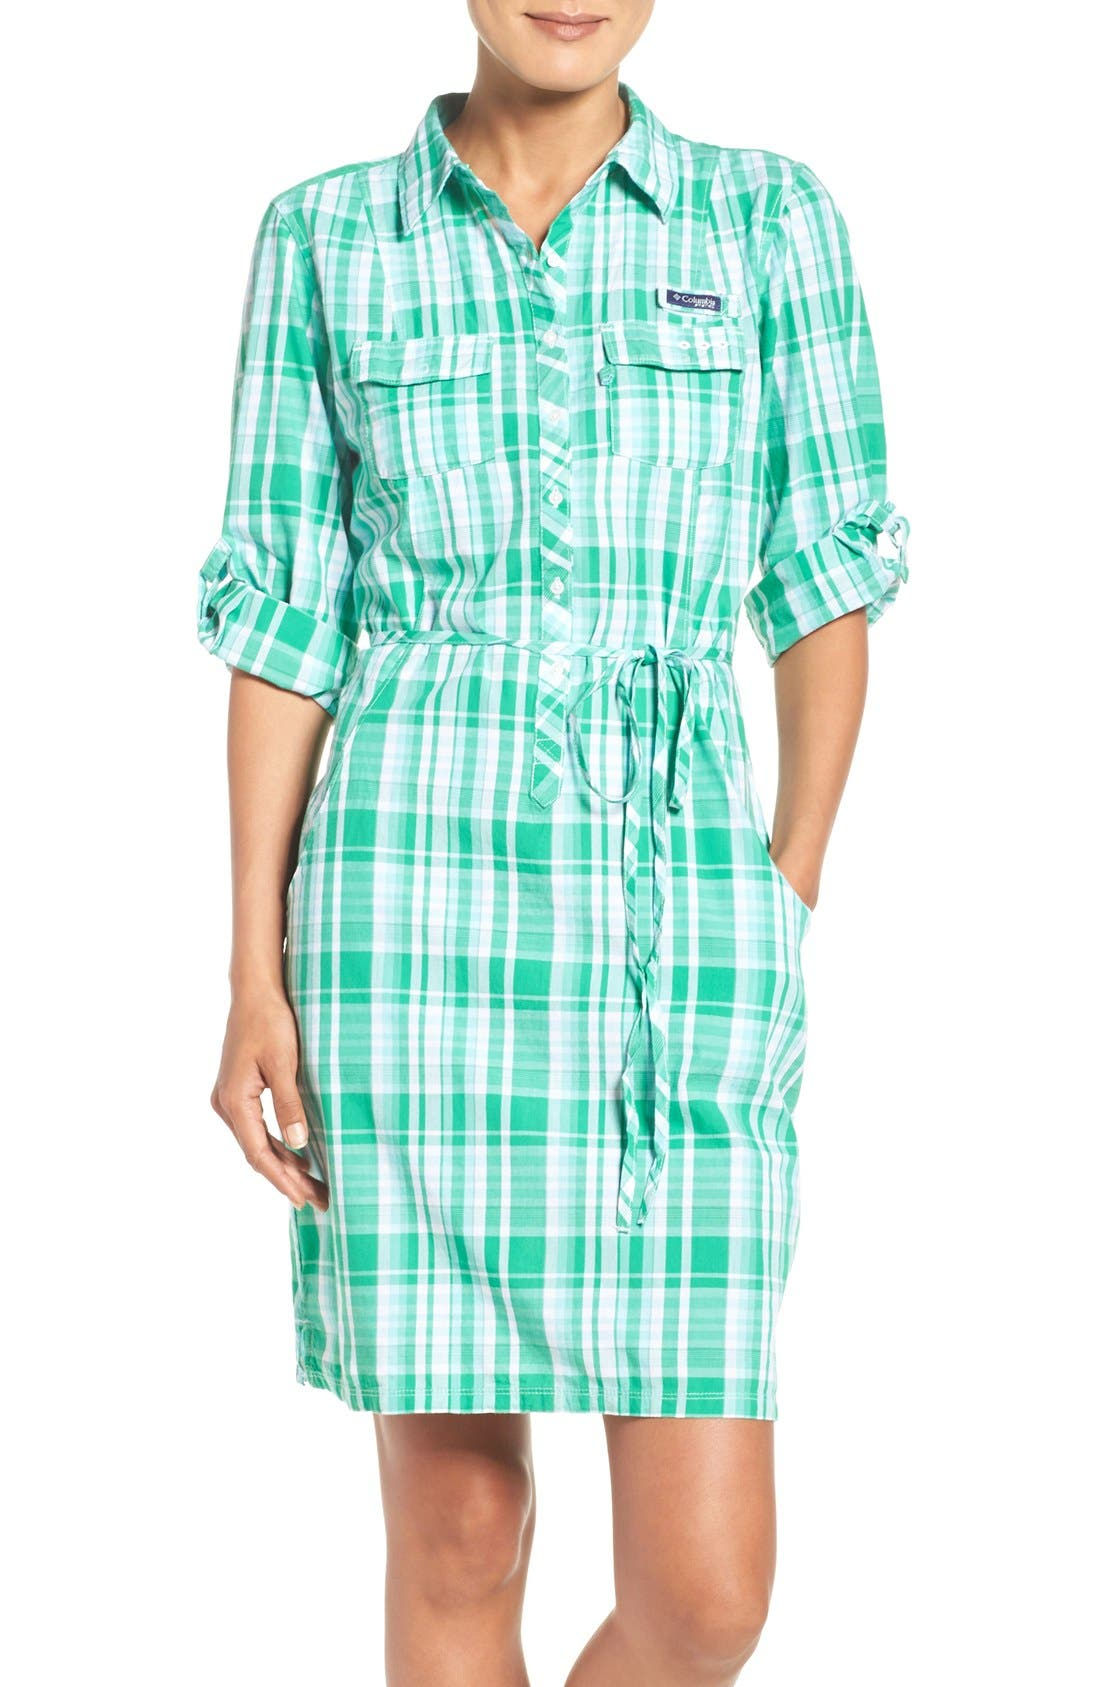 Main Image - Columbia 'Super Bonehead' Cotton Shirtdress